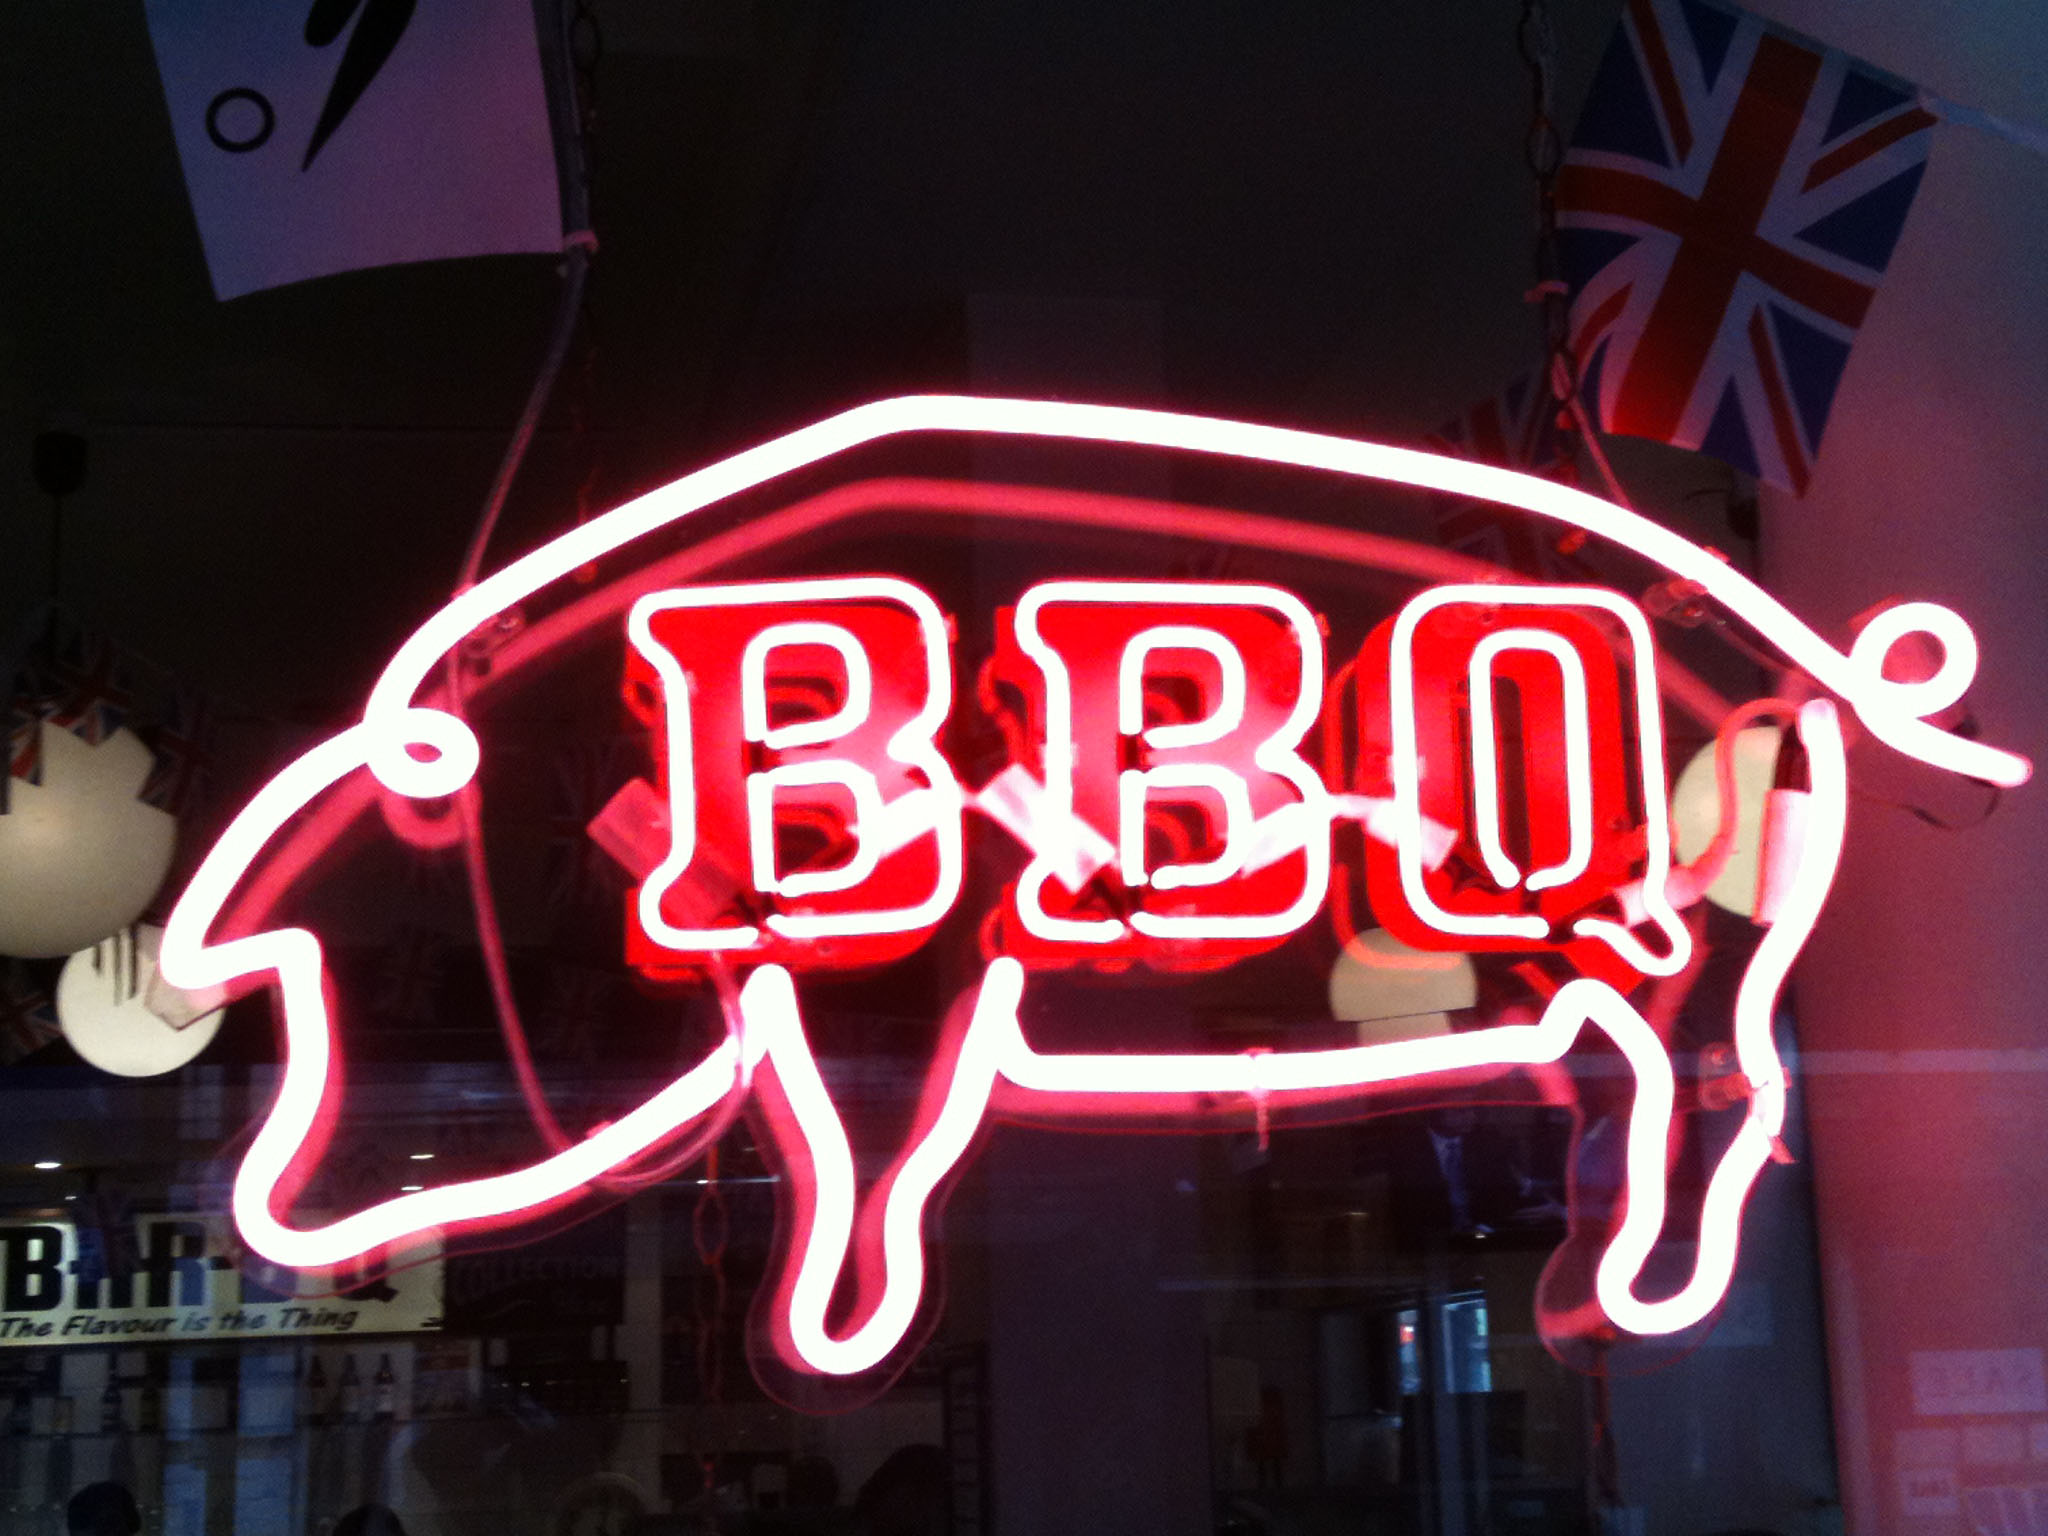 BBQ Pig - A neon sign in the window at Bodean's BBQ in Soho, London